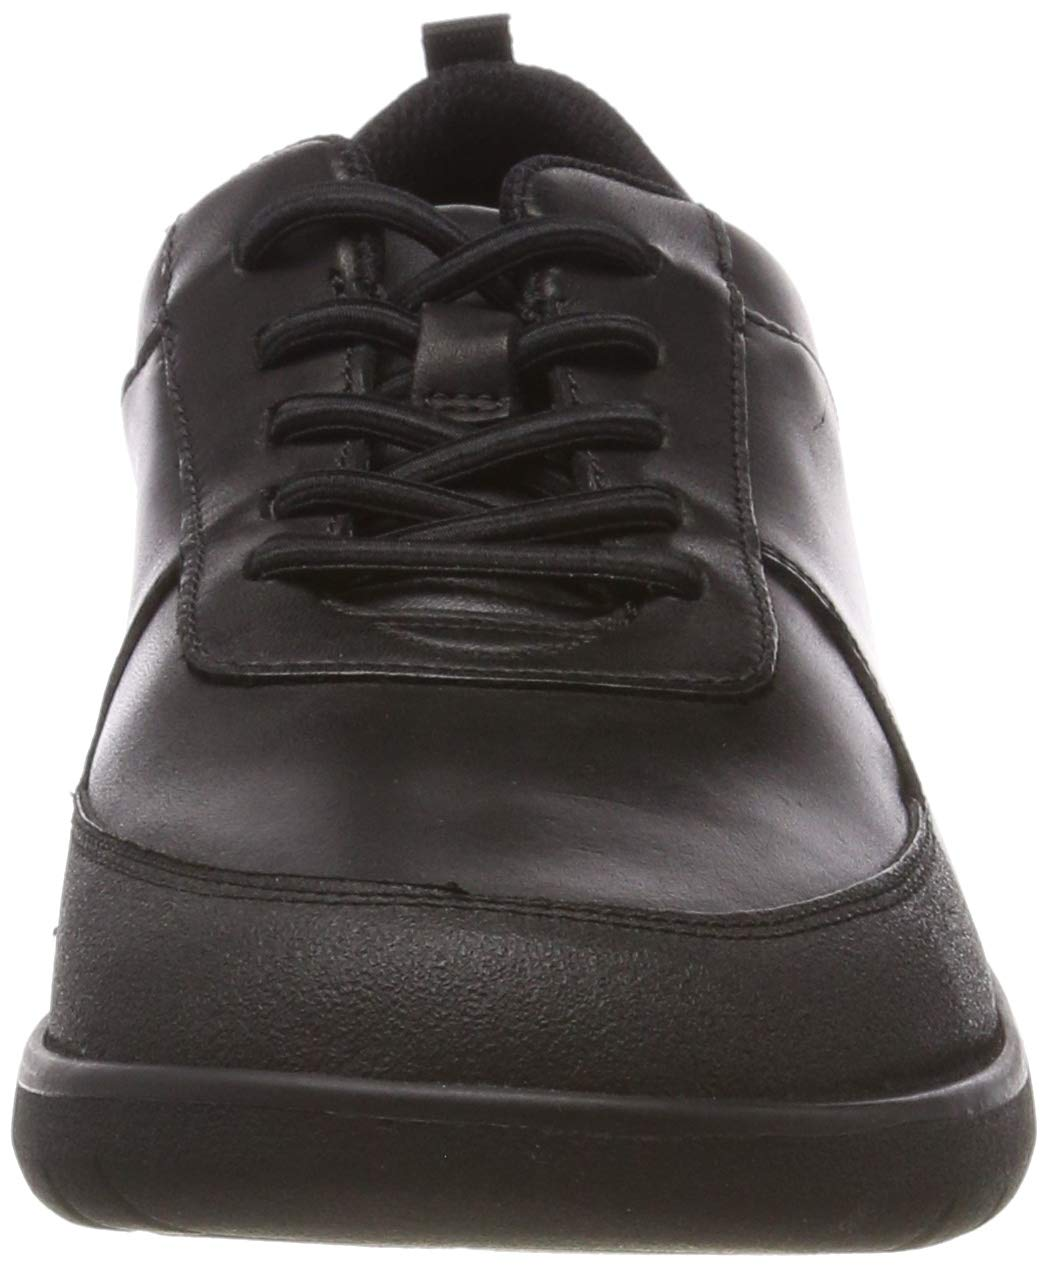 CLARKS Boys' Scape Street Y Brogues, (Black Leather-), 3 UK by CLARKS (Image #4)